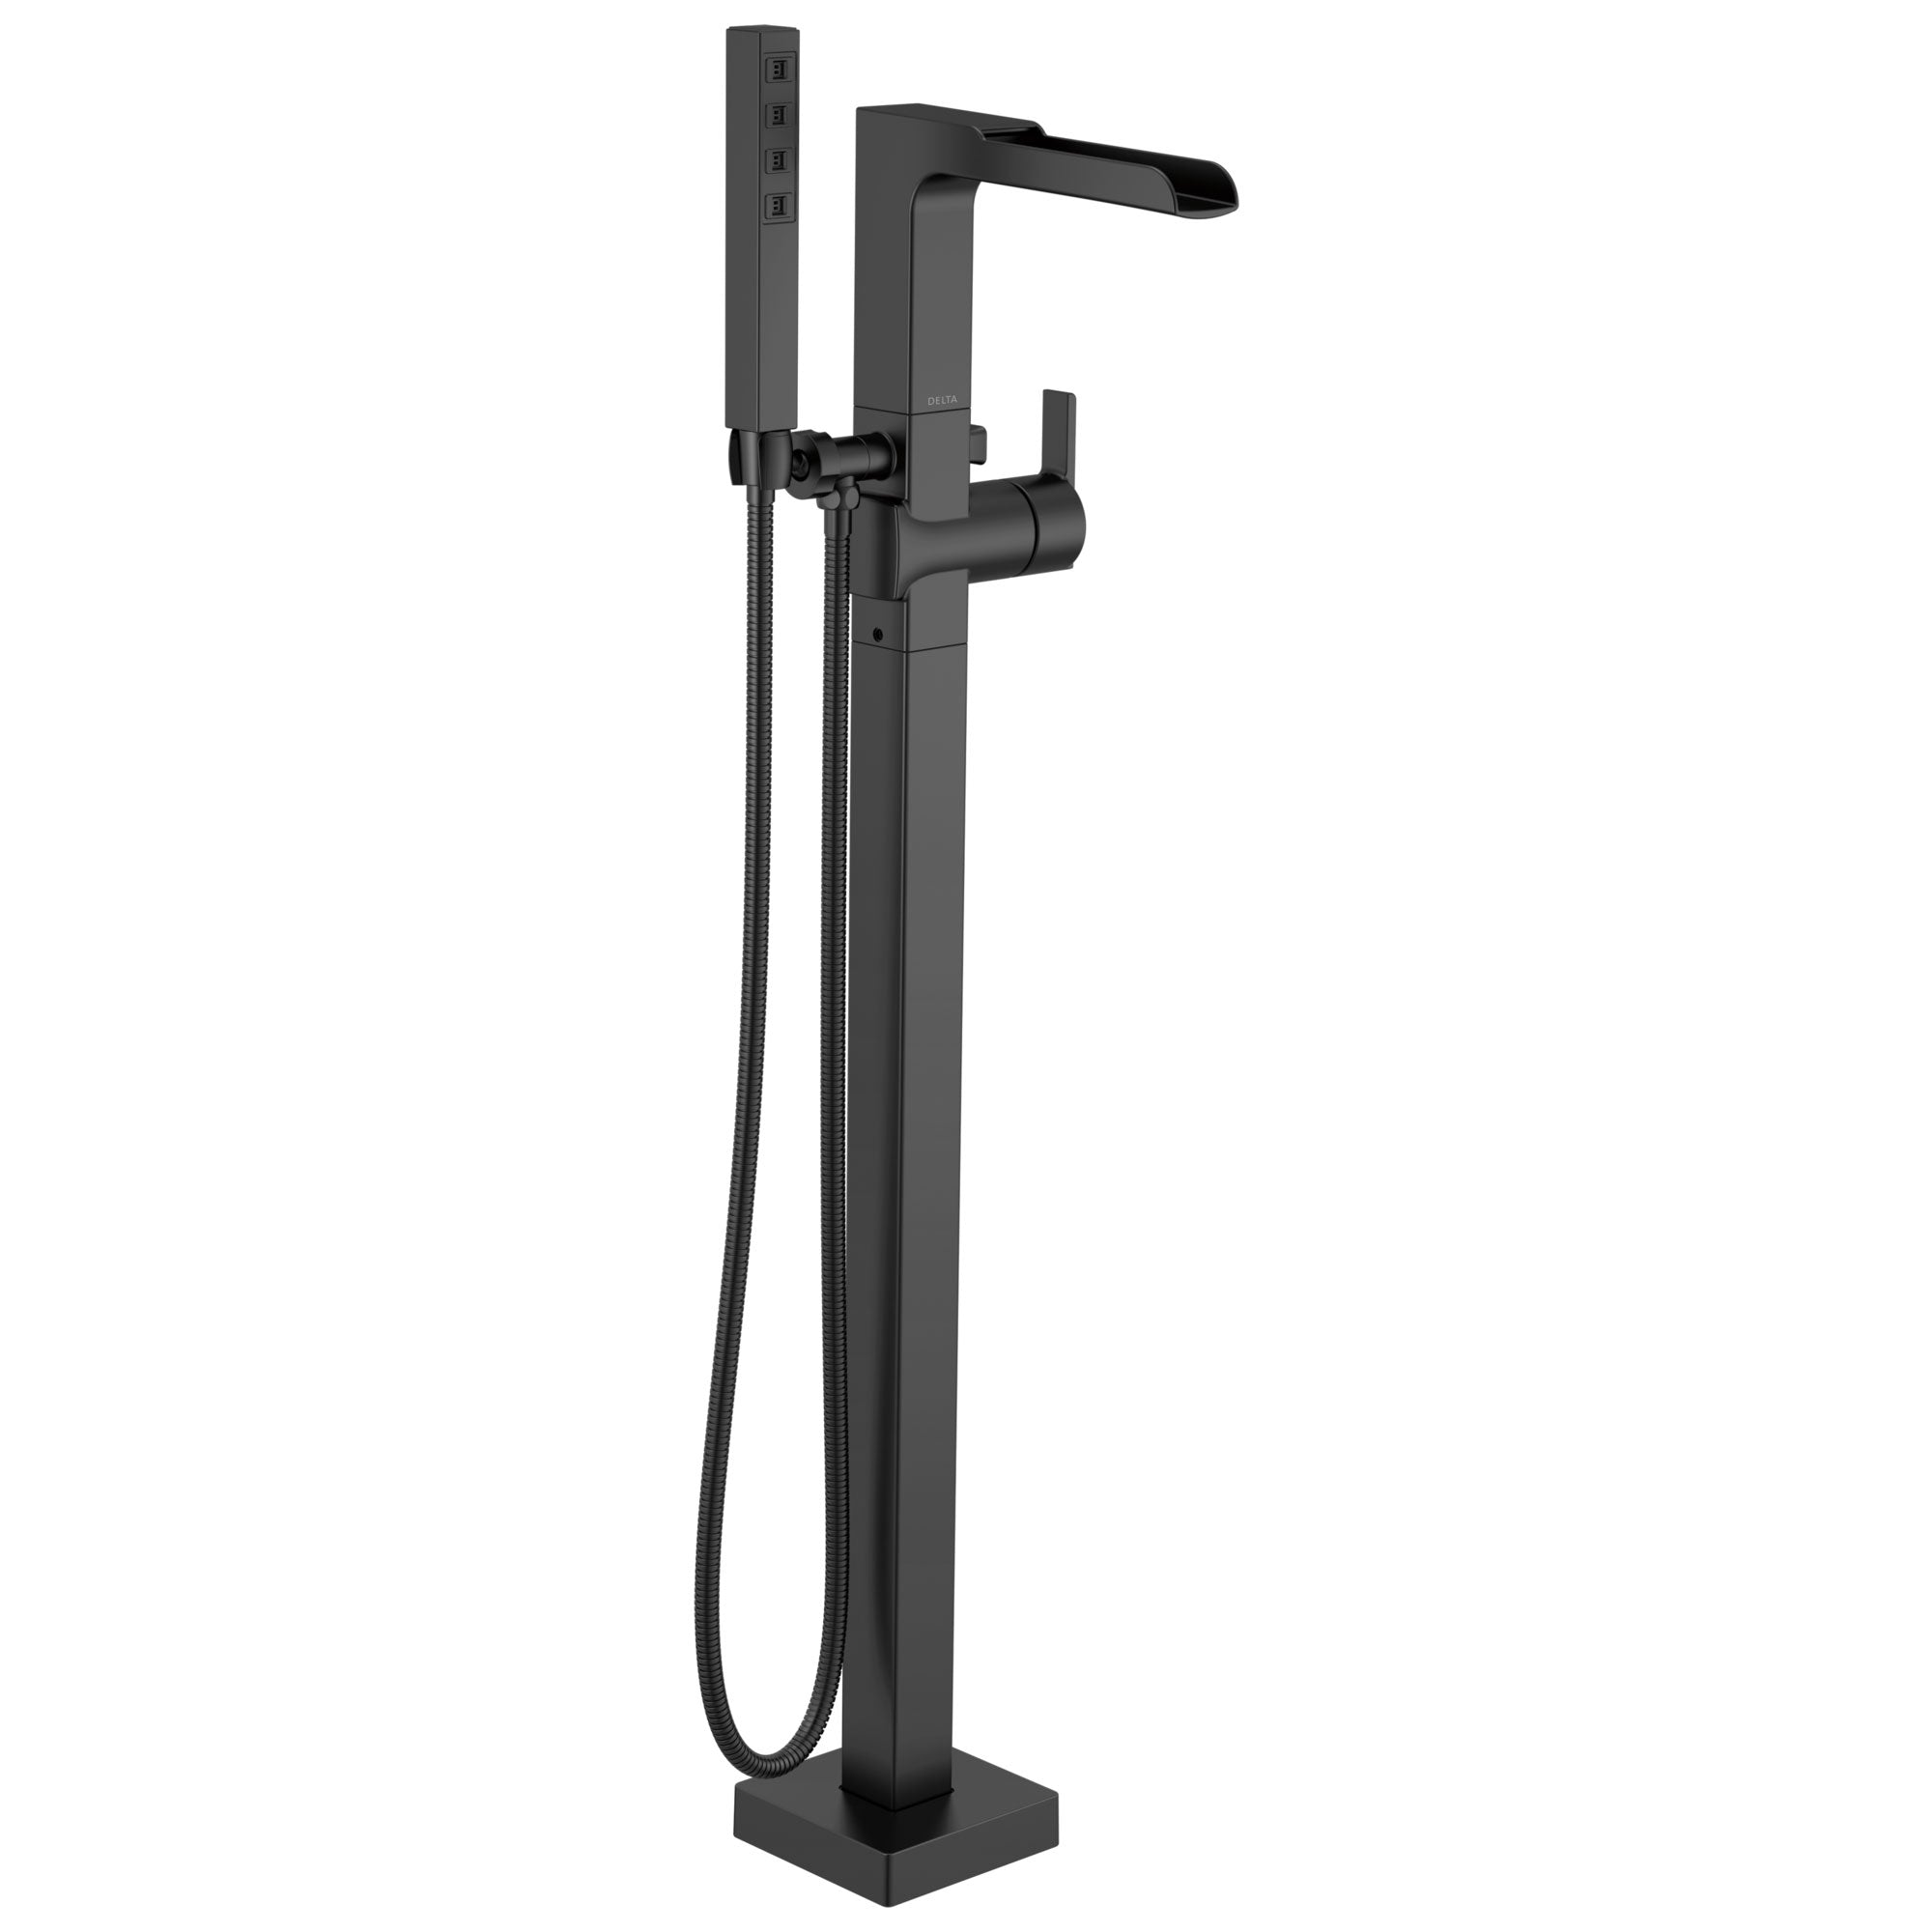 Delta Ara Matte Black Finish Freestanding Floor Mount Channel Spout Tub Filler Faucet with Hand Shower Includes Handle, Cartridge, and Valve D3611V